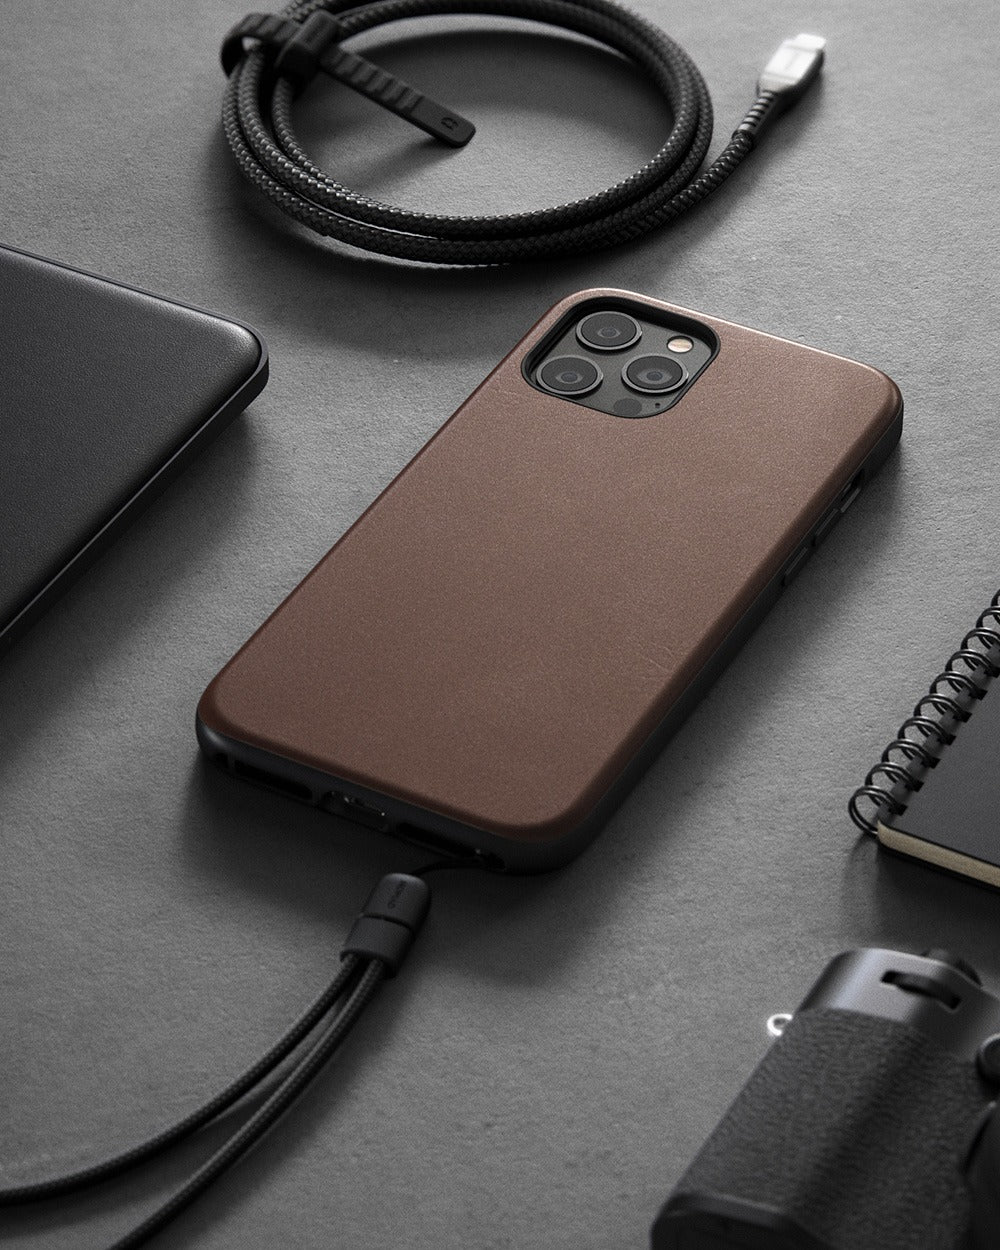 https://cdn.shopify.com/s/files/1/0384/6721/files/iPhone_12_Series_-_Rugged_Case_-_Lifestyle_05_-_Rustic_Brown_Leather_-_MOBILE.jpg?v=1602795150